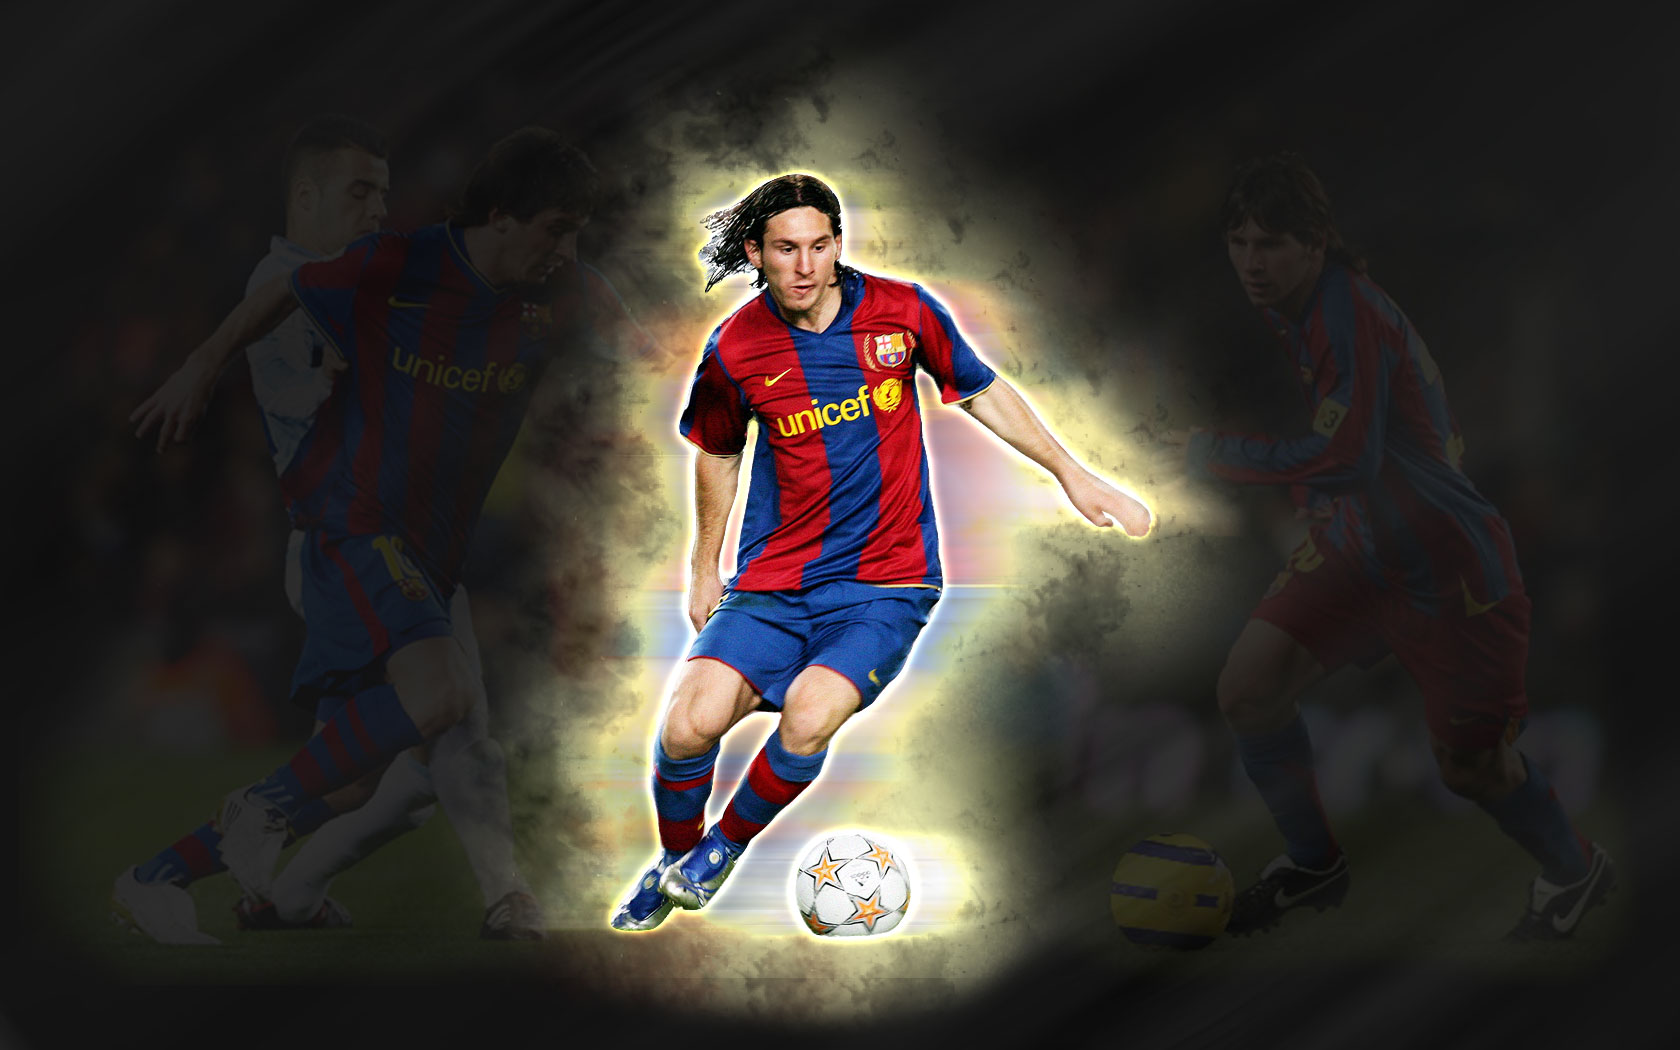 Lionel Messi Desktop Wallpaper Wallpaper Lionel Messi Football Player 1680x1050